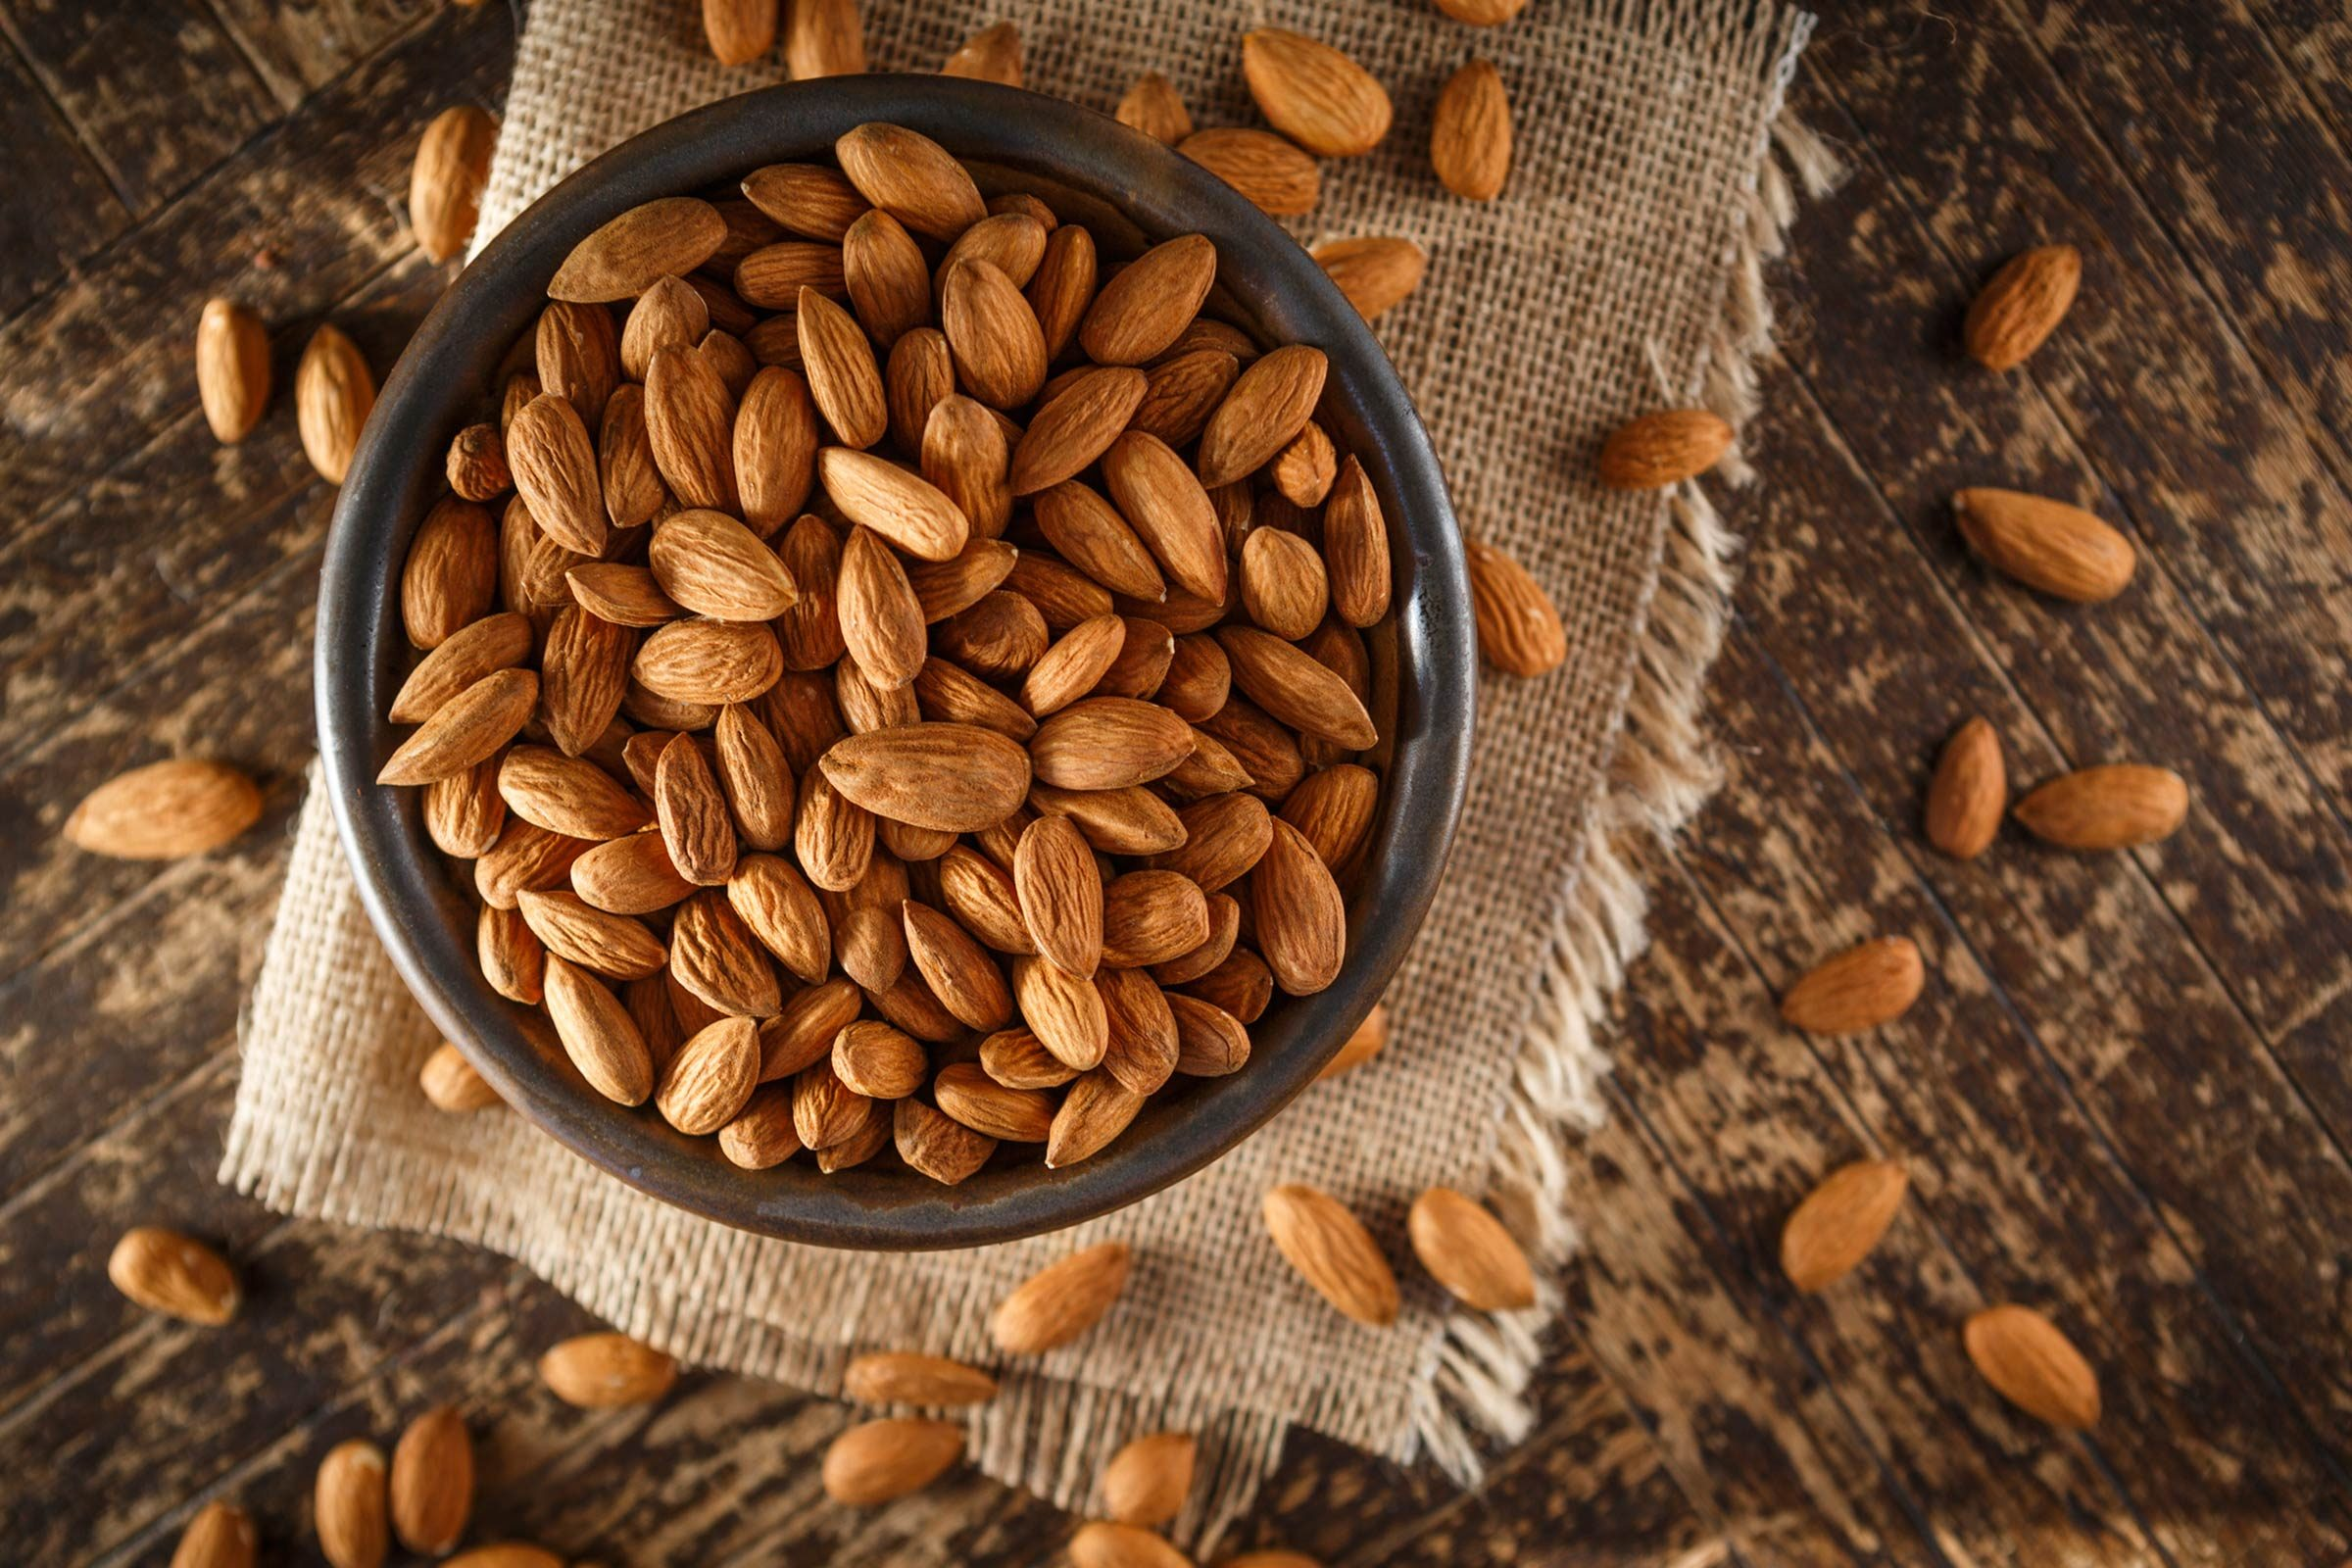 06_Almonds_Immune_boosting_foods